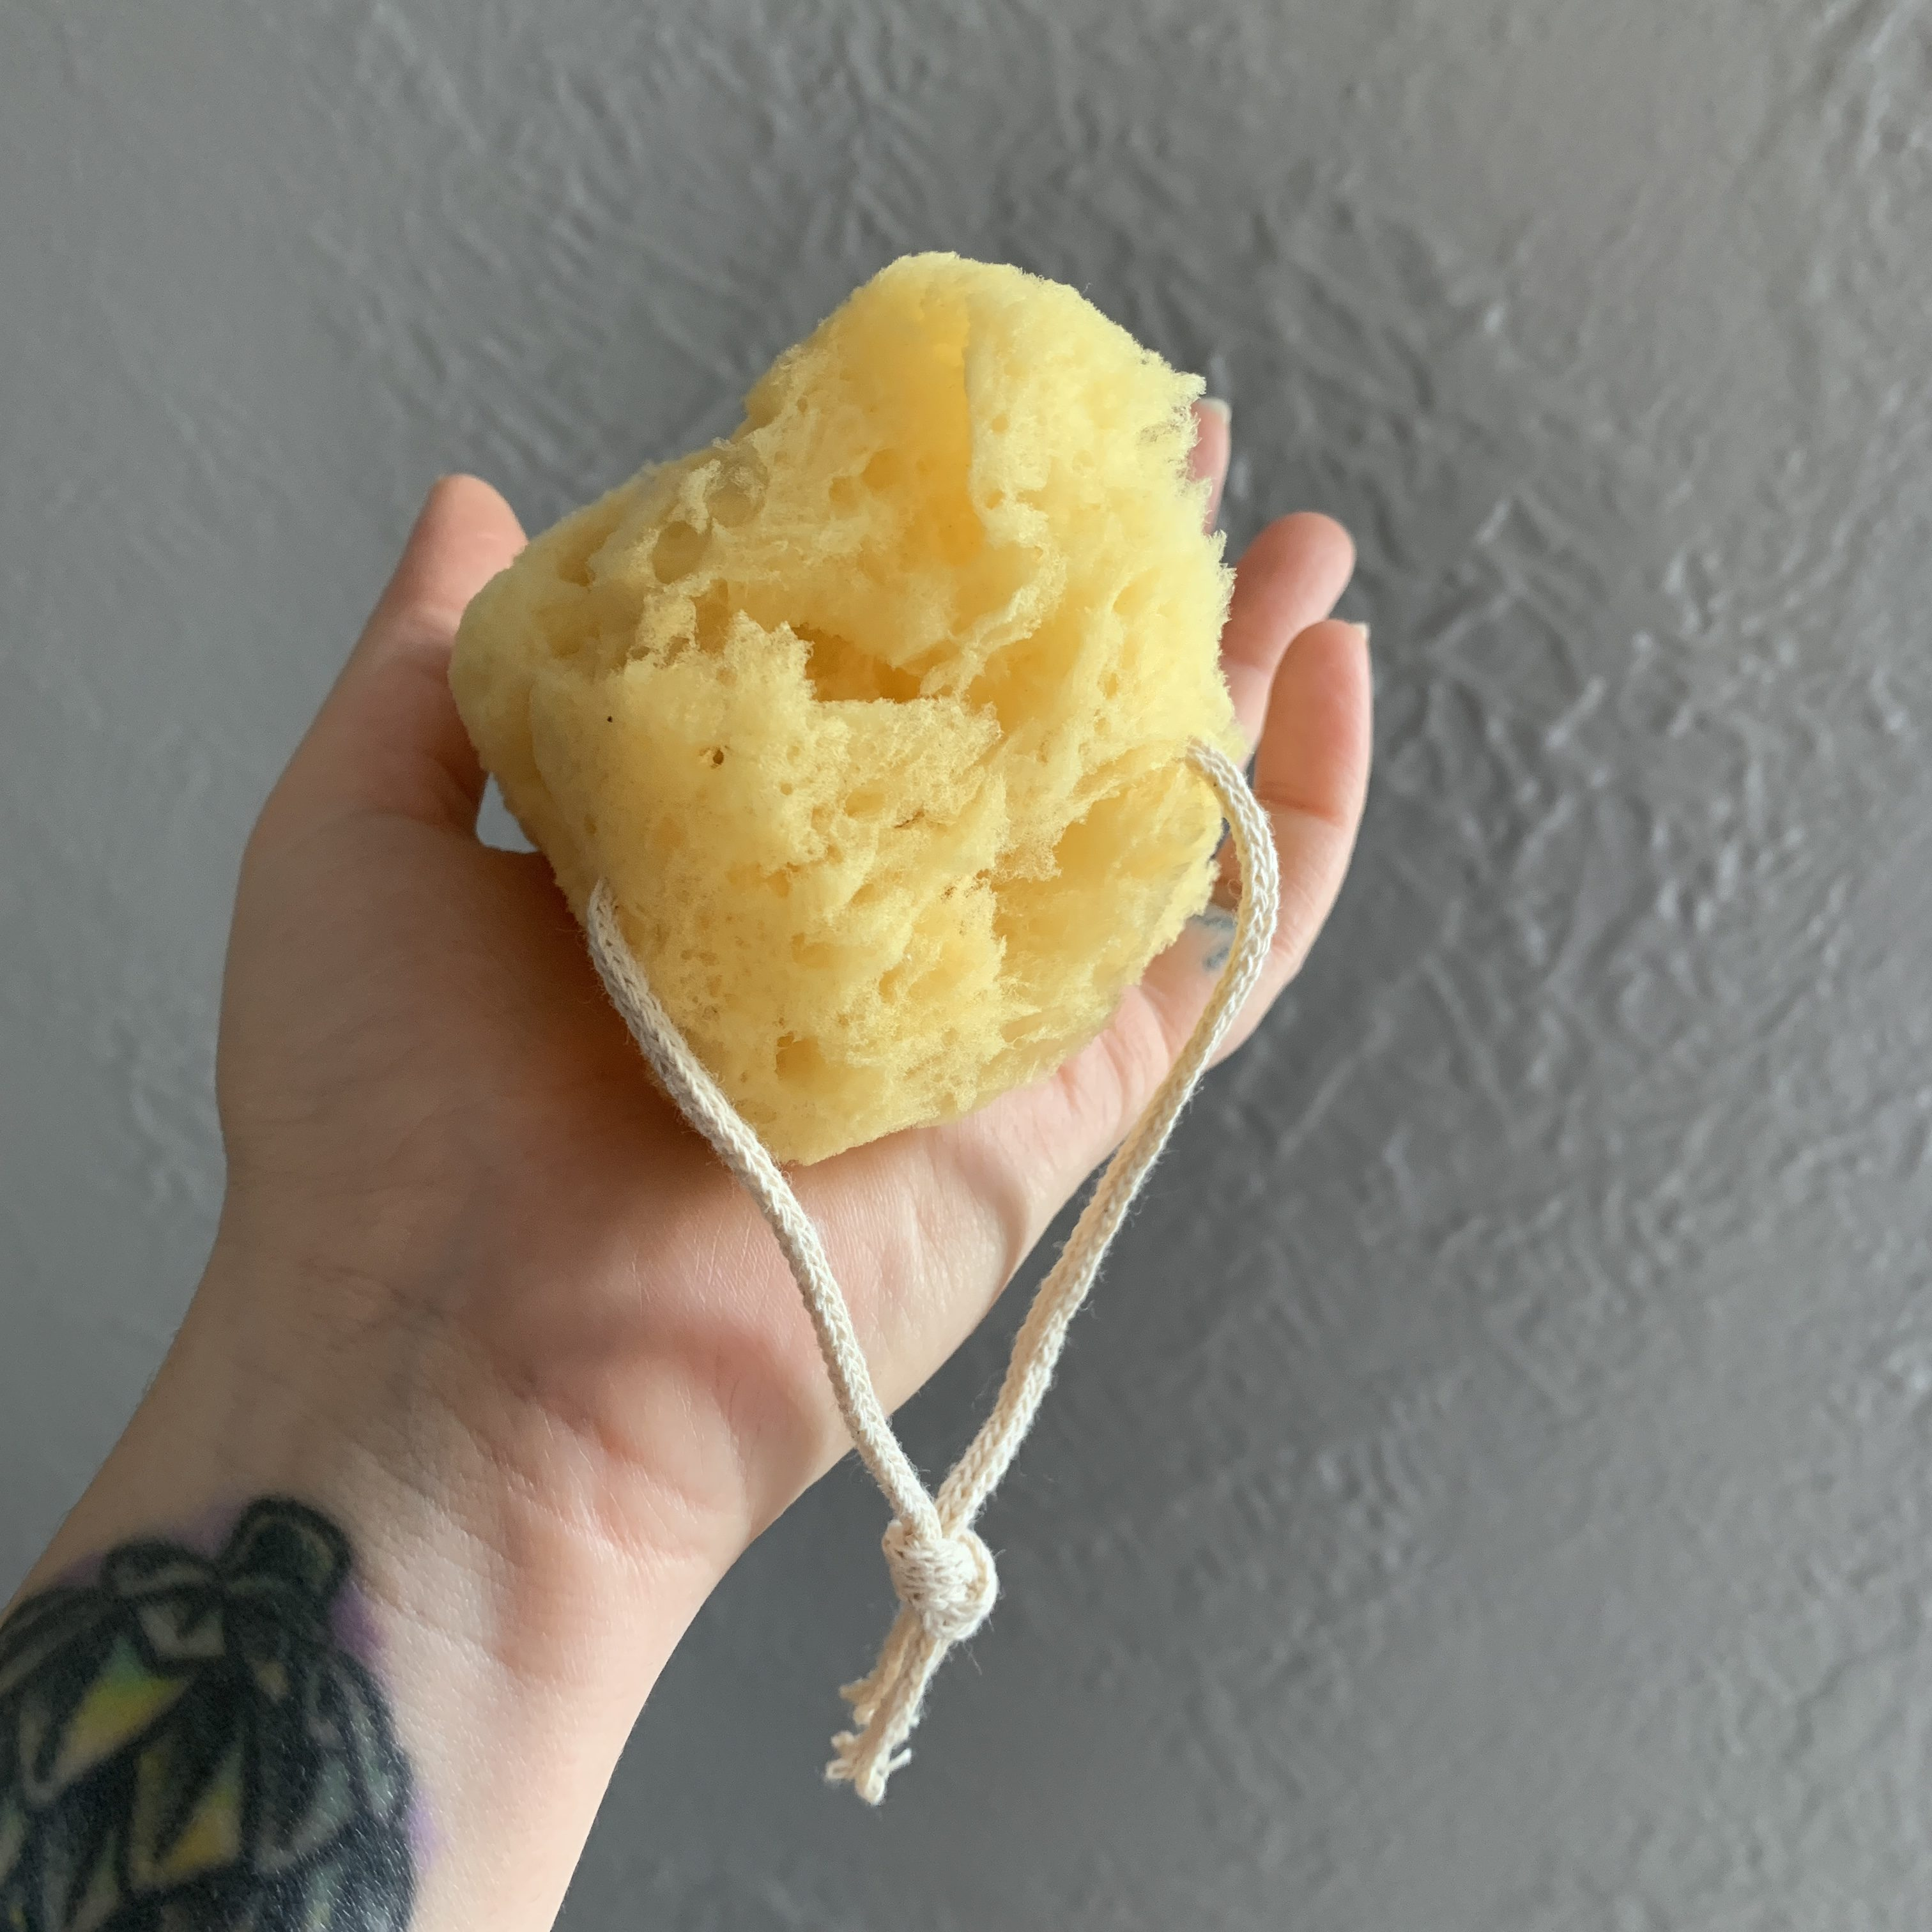 Public Goods Sea Sponge in hand